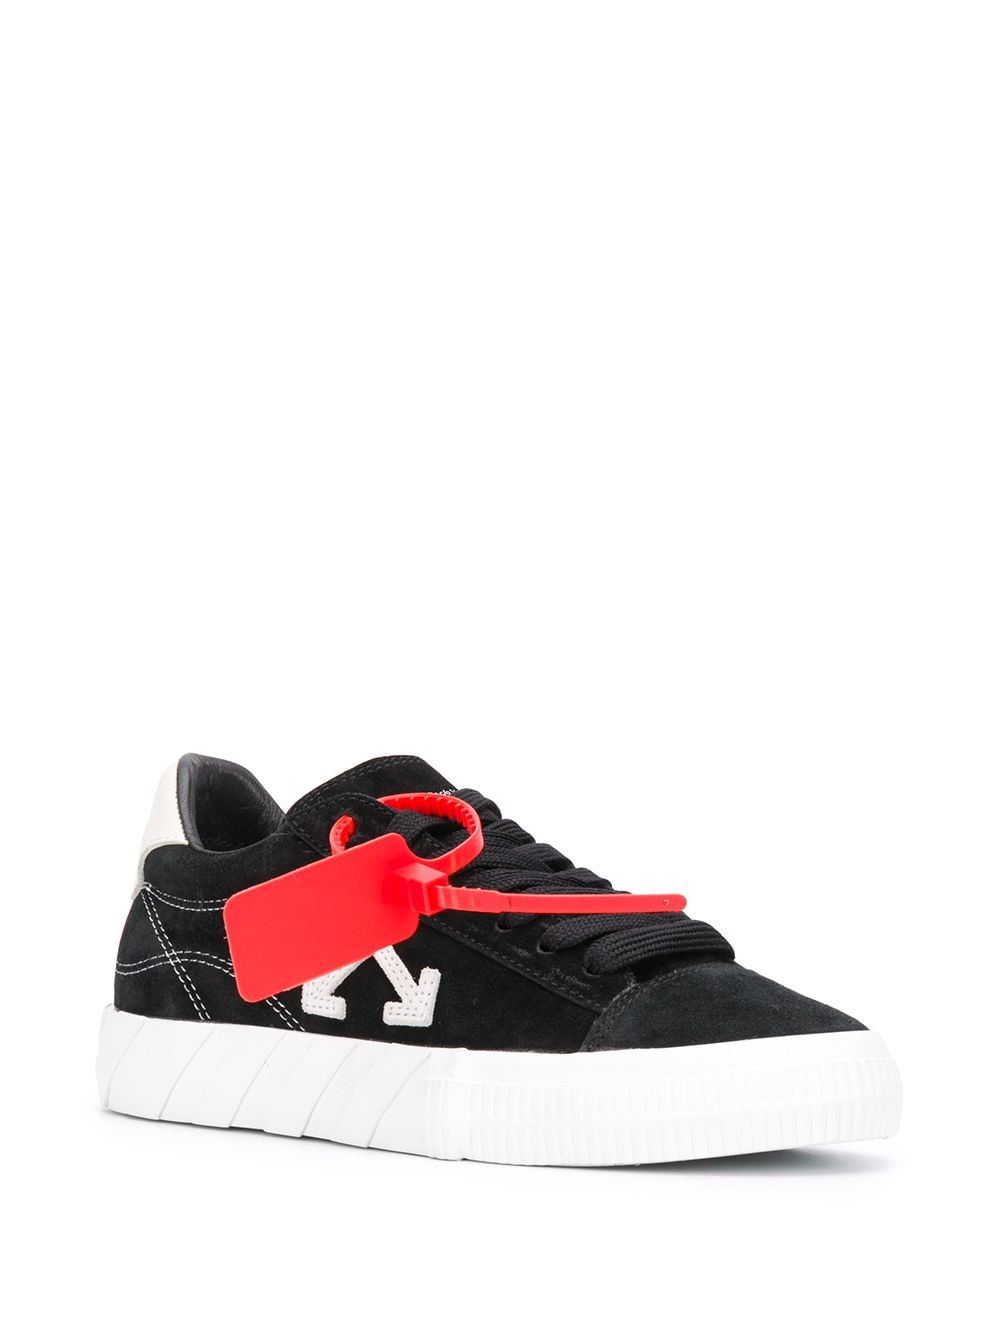 OFF-WHITE New Arrow Low Vulcanized Sneakers Black